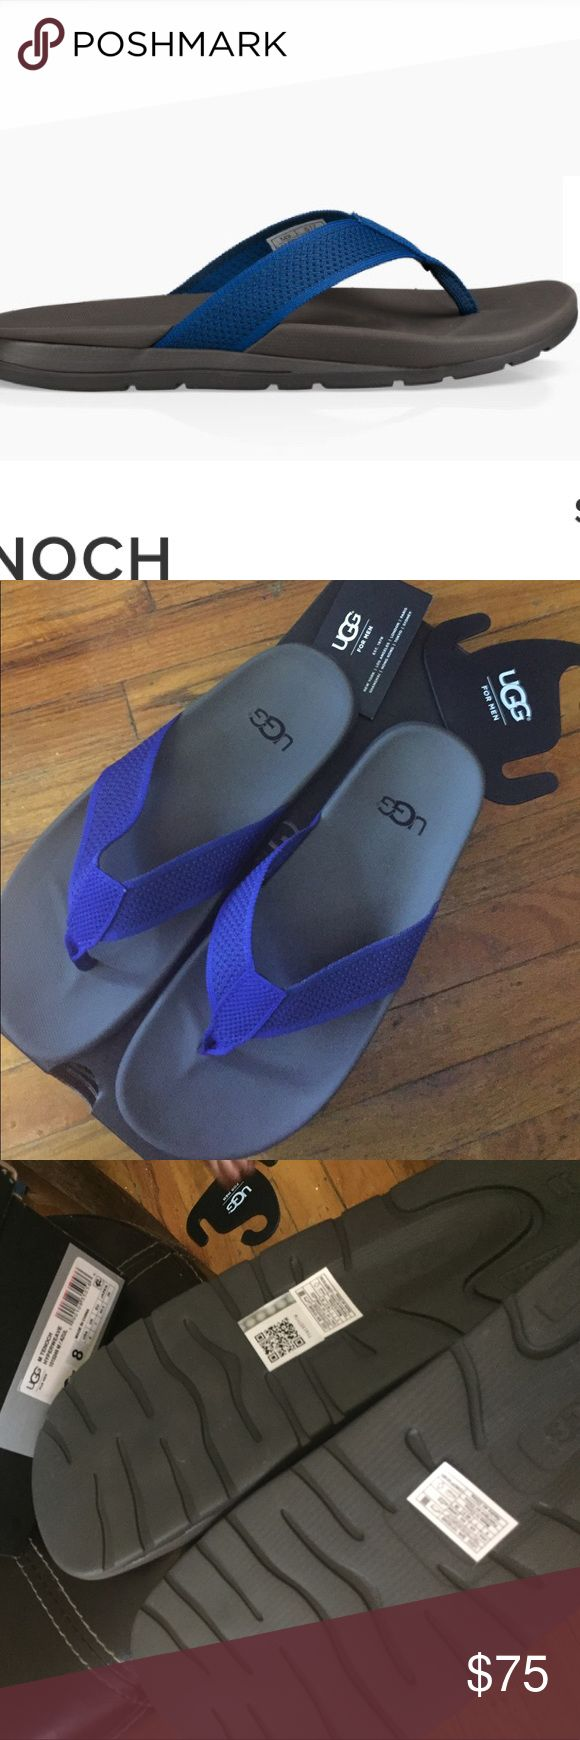 are ugg flip flops made in china